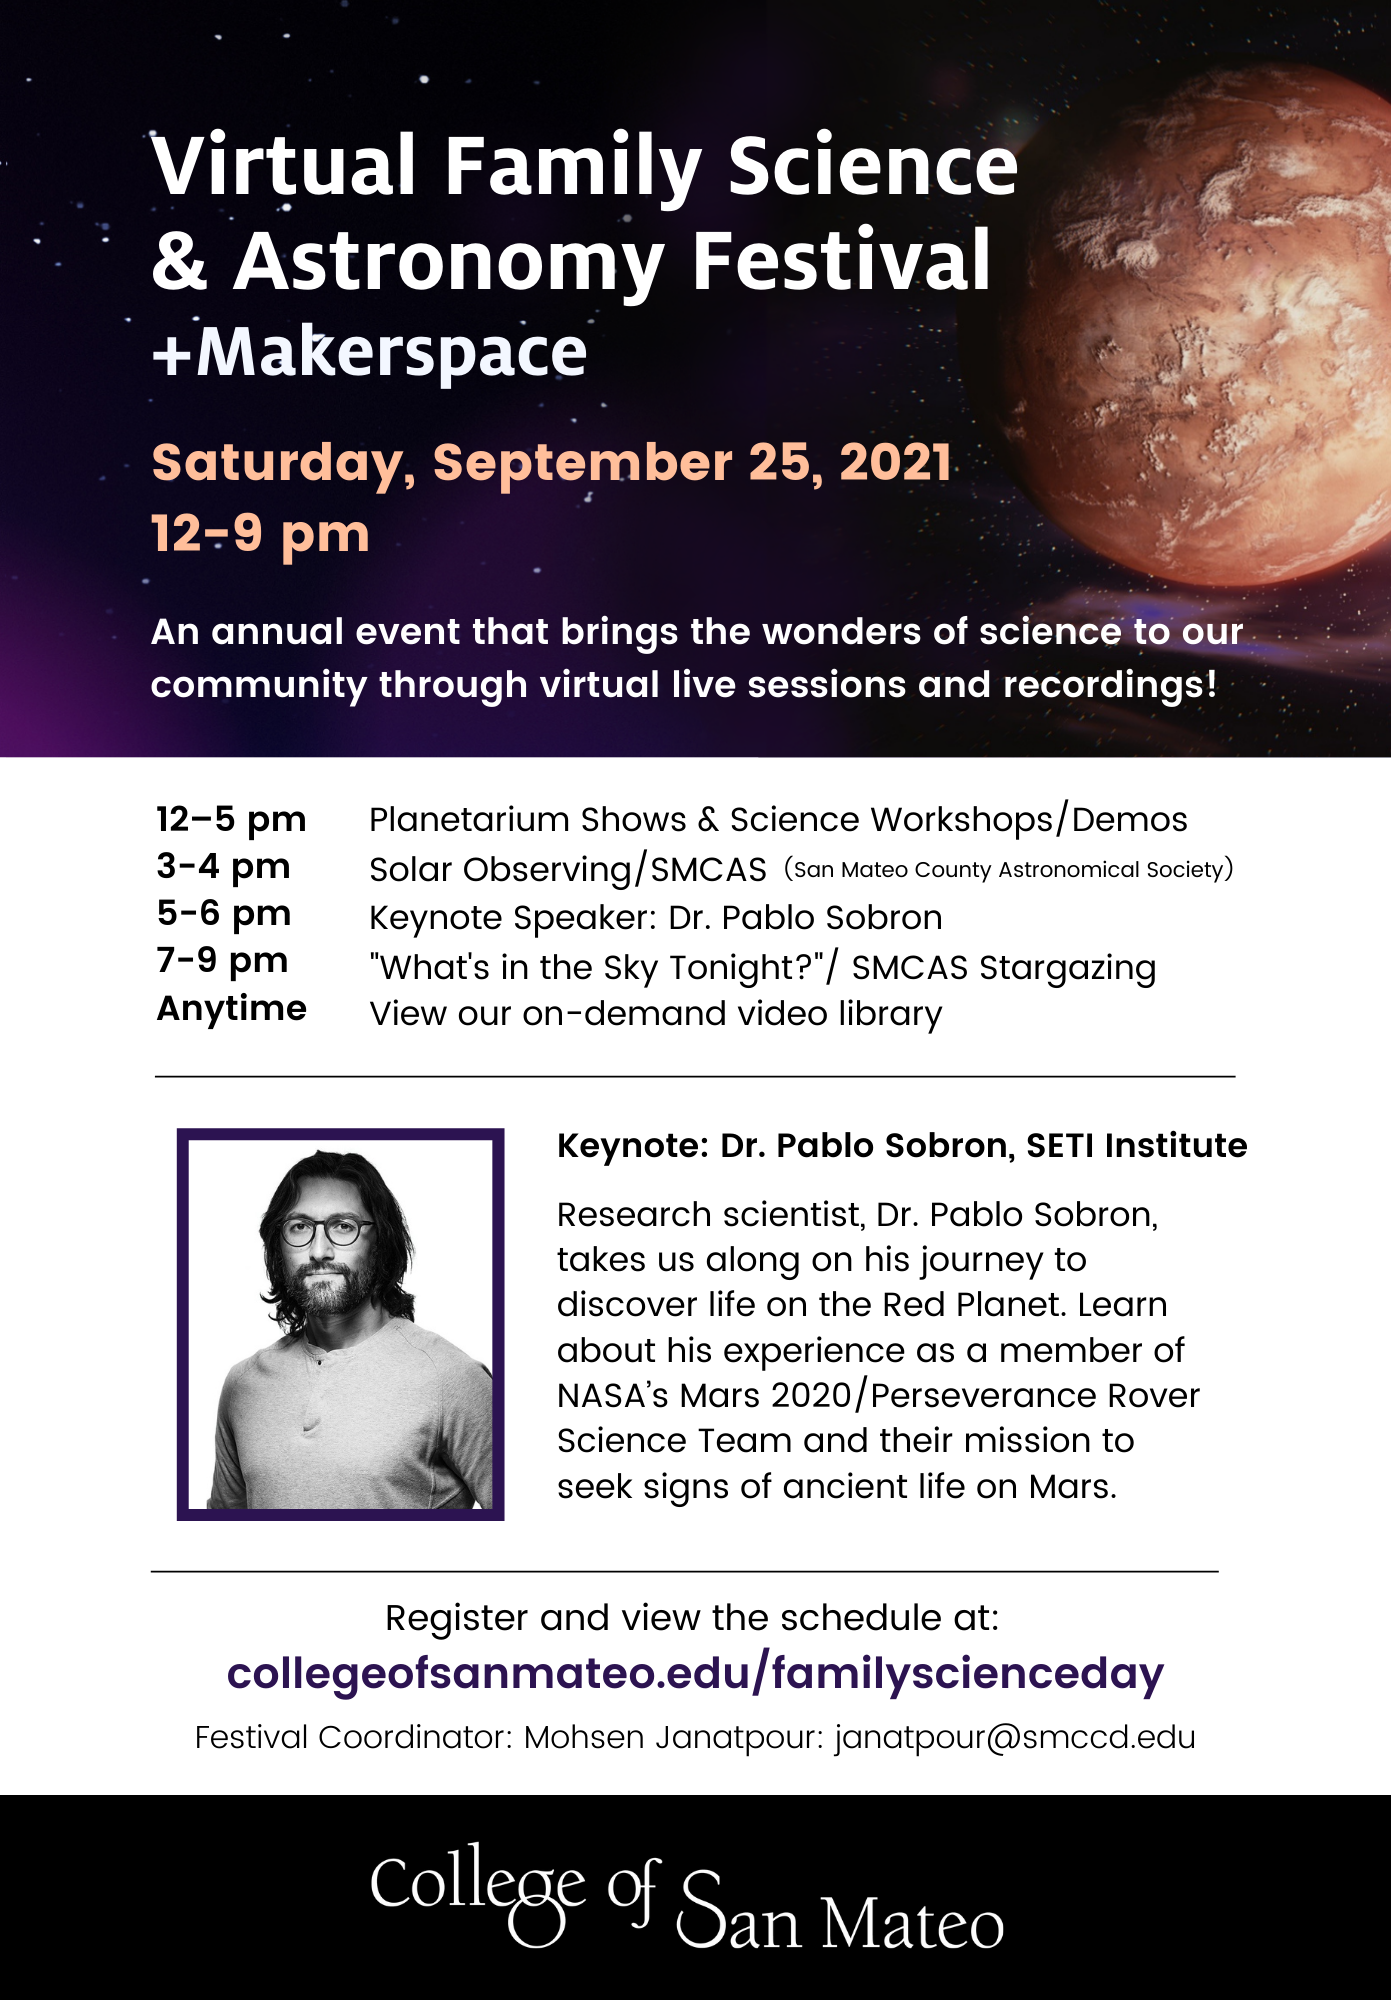 Virtual Family Science & Astronomy Festival + Makerspace Flier